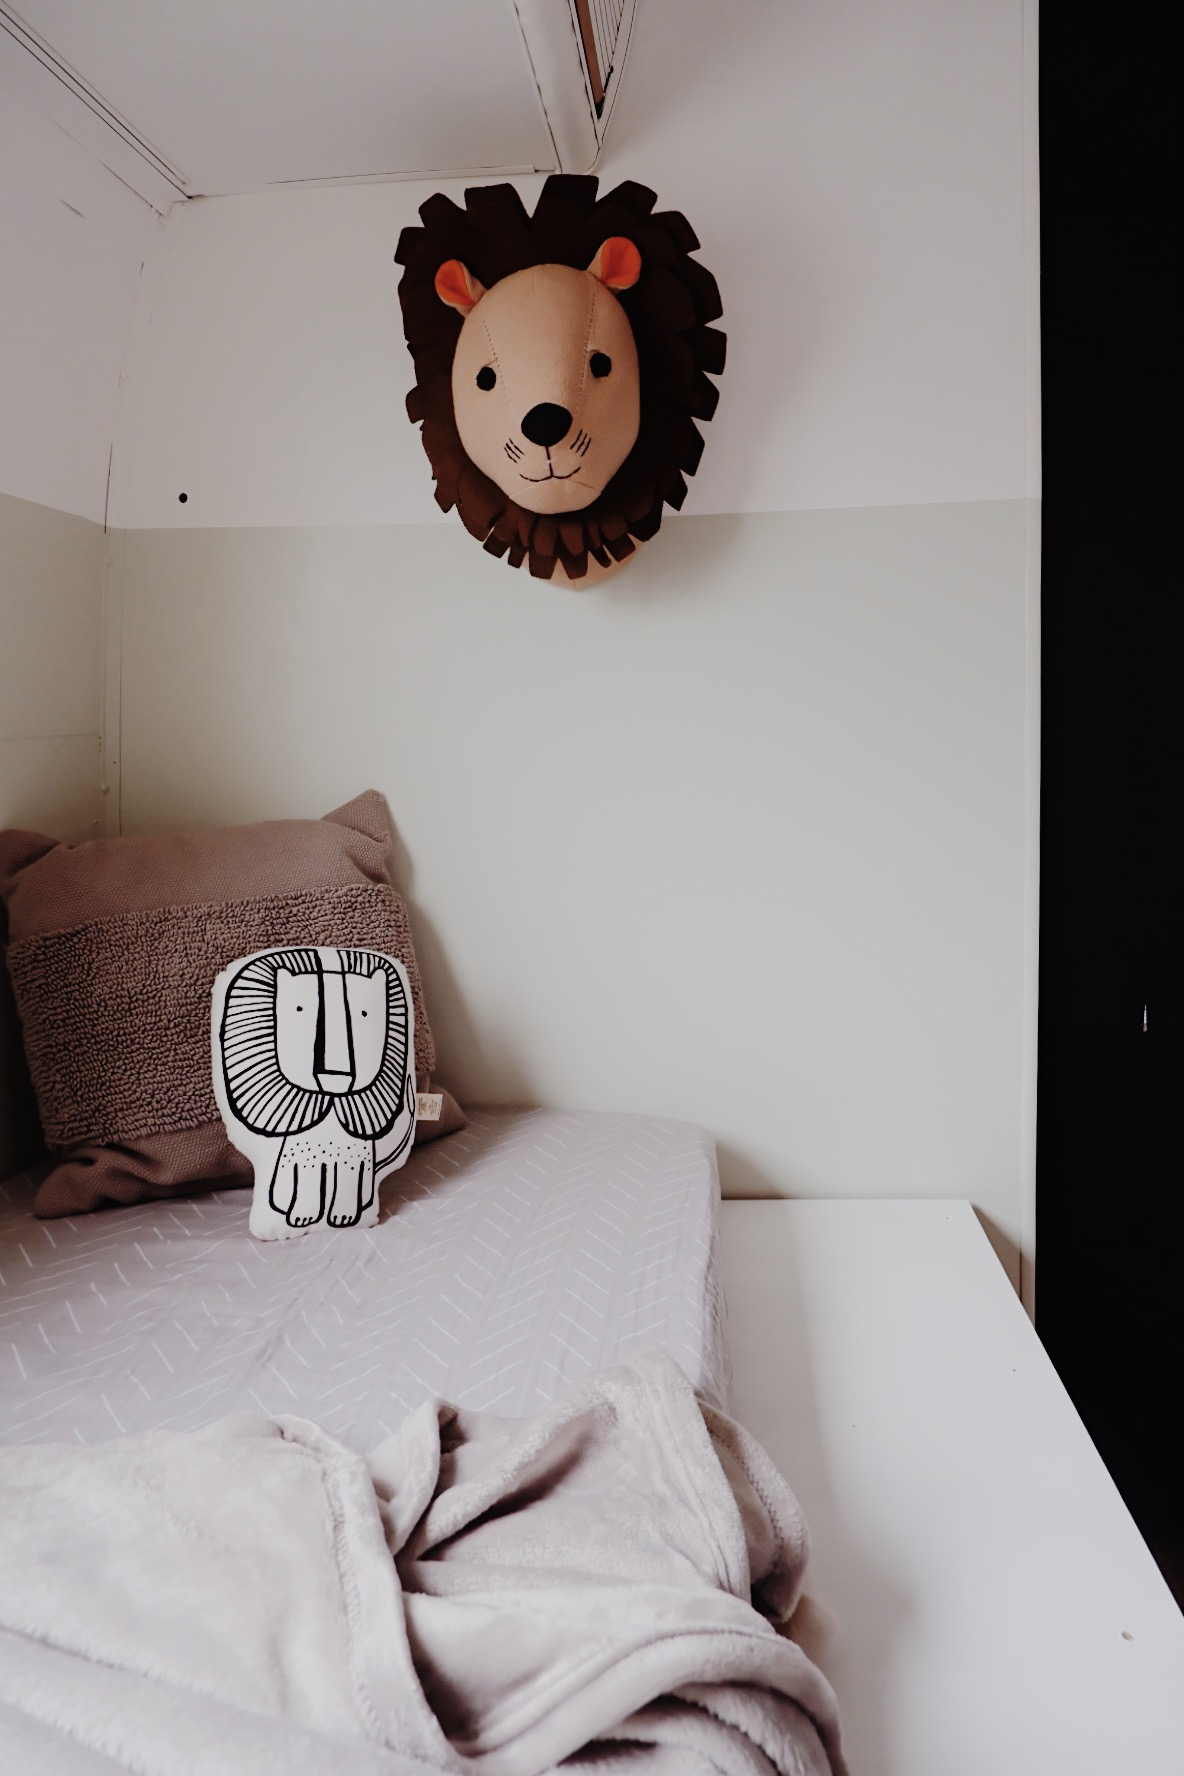 AIRSTREAM UPDATES: THIS BOY'S ROOM - This Wild Home